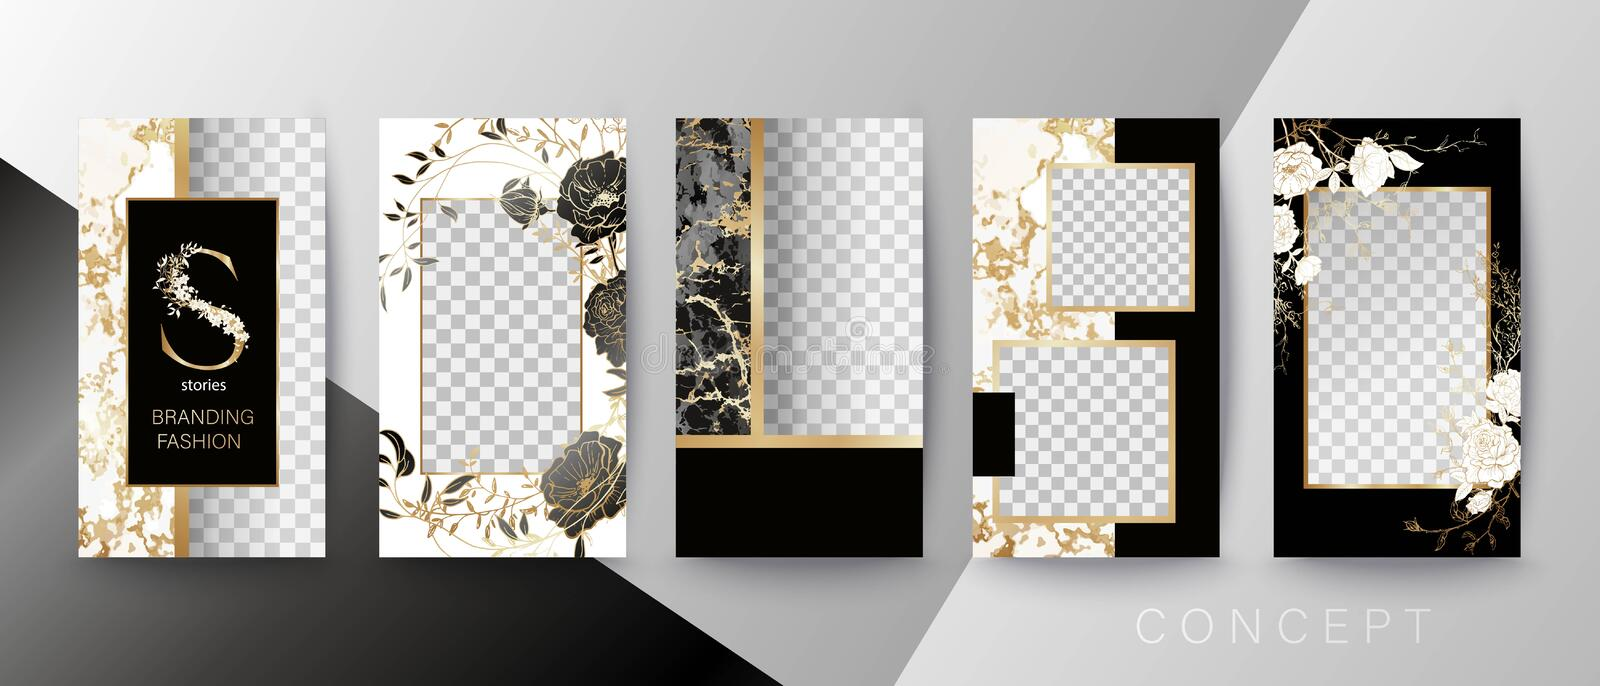 Creative card, invitation, frame for text or photo. Quote template. Art concept for Stories. Black marble, floral and golden frame vector illustration